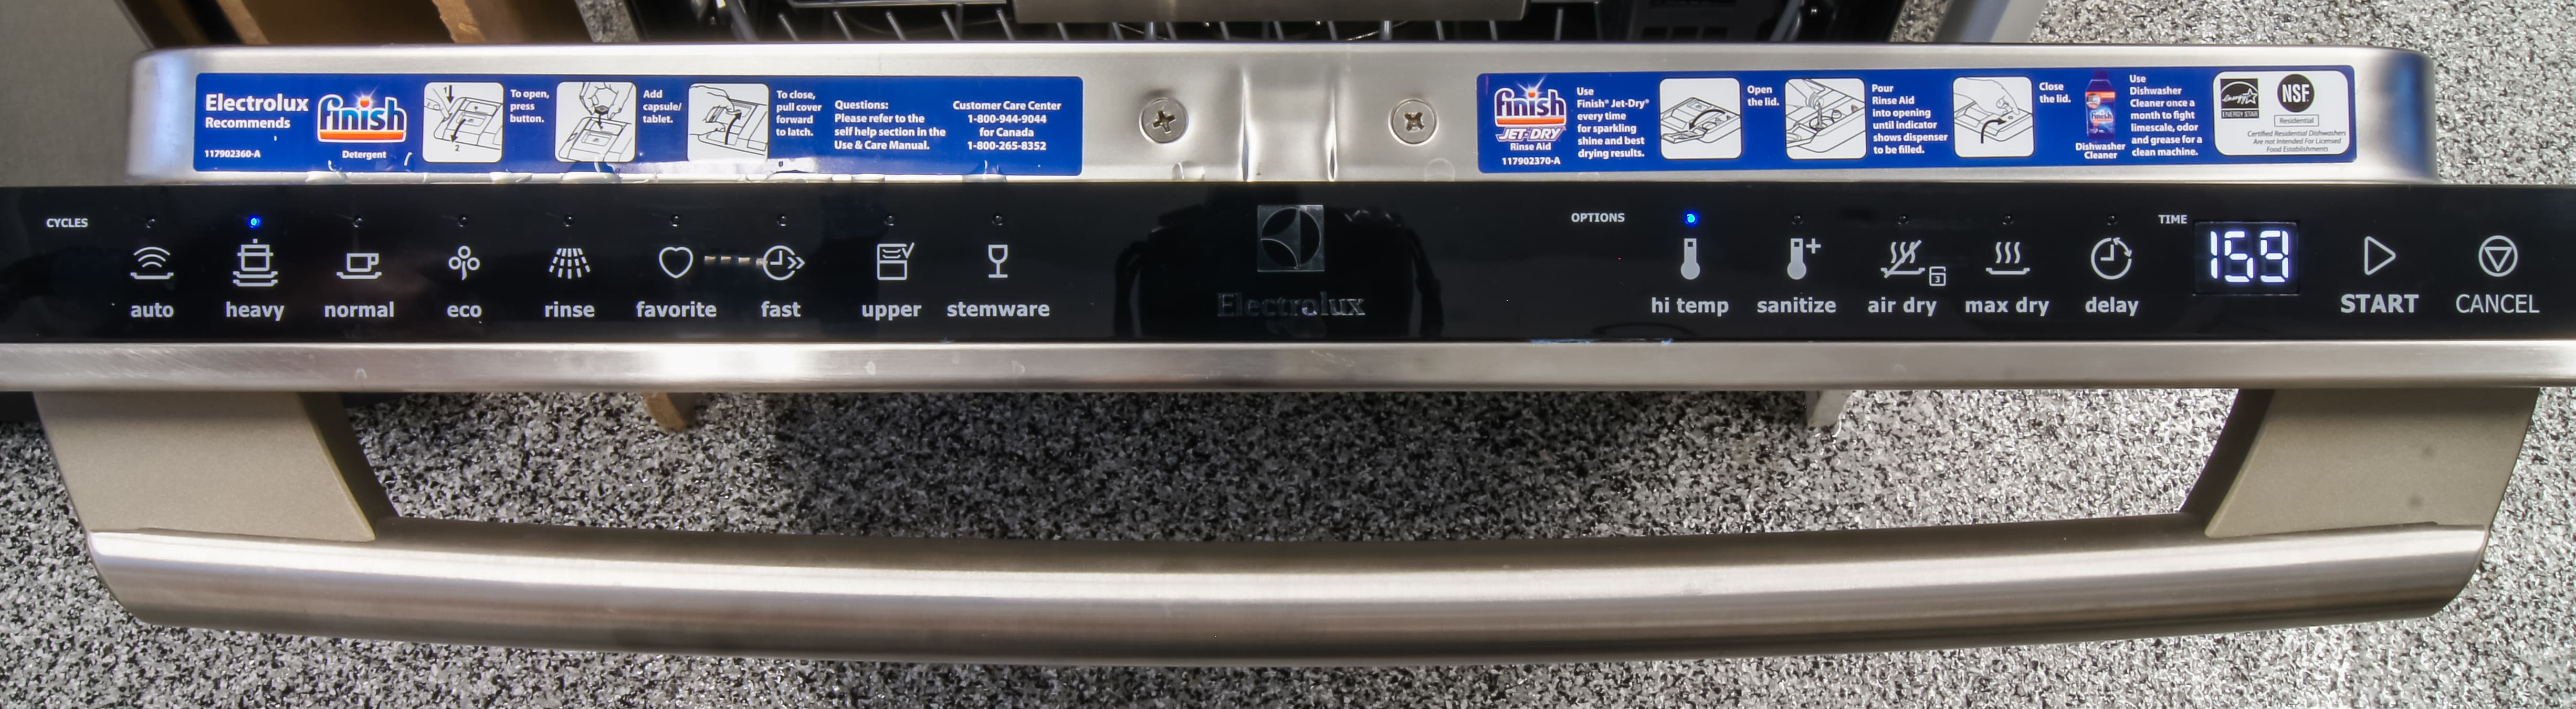 Electrolux EI24ID50QS Dishwasher Review - Reviewed Dishwashers